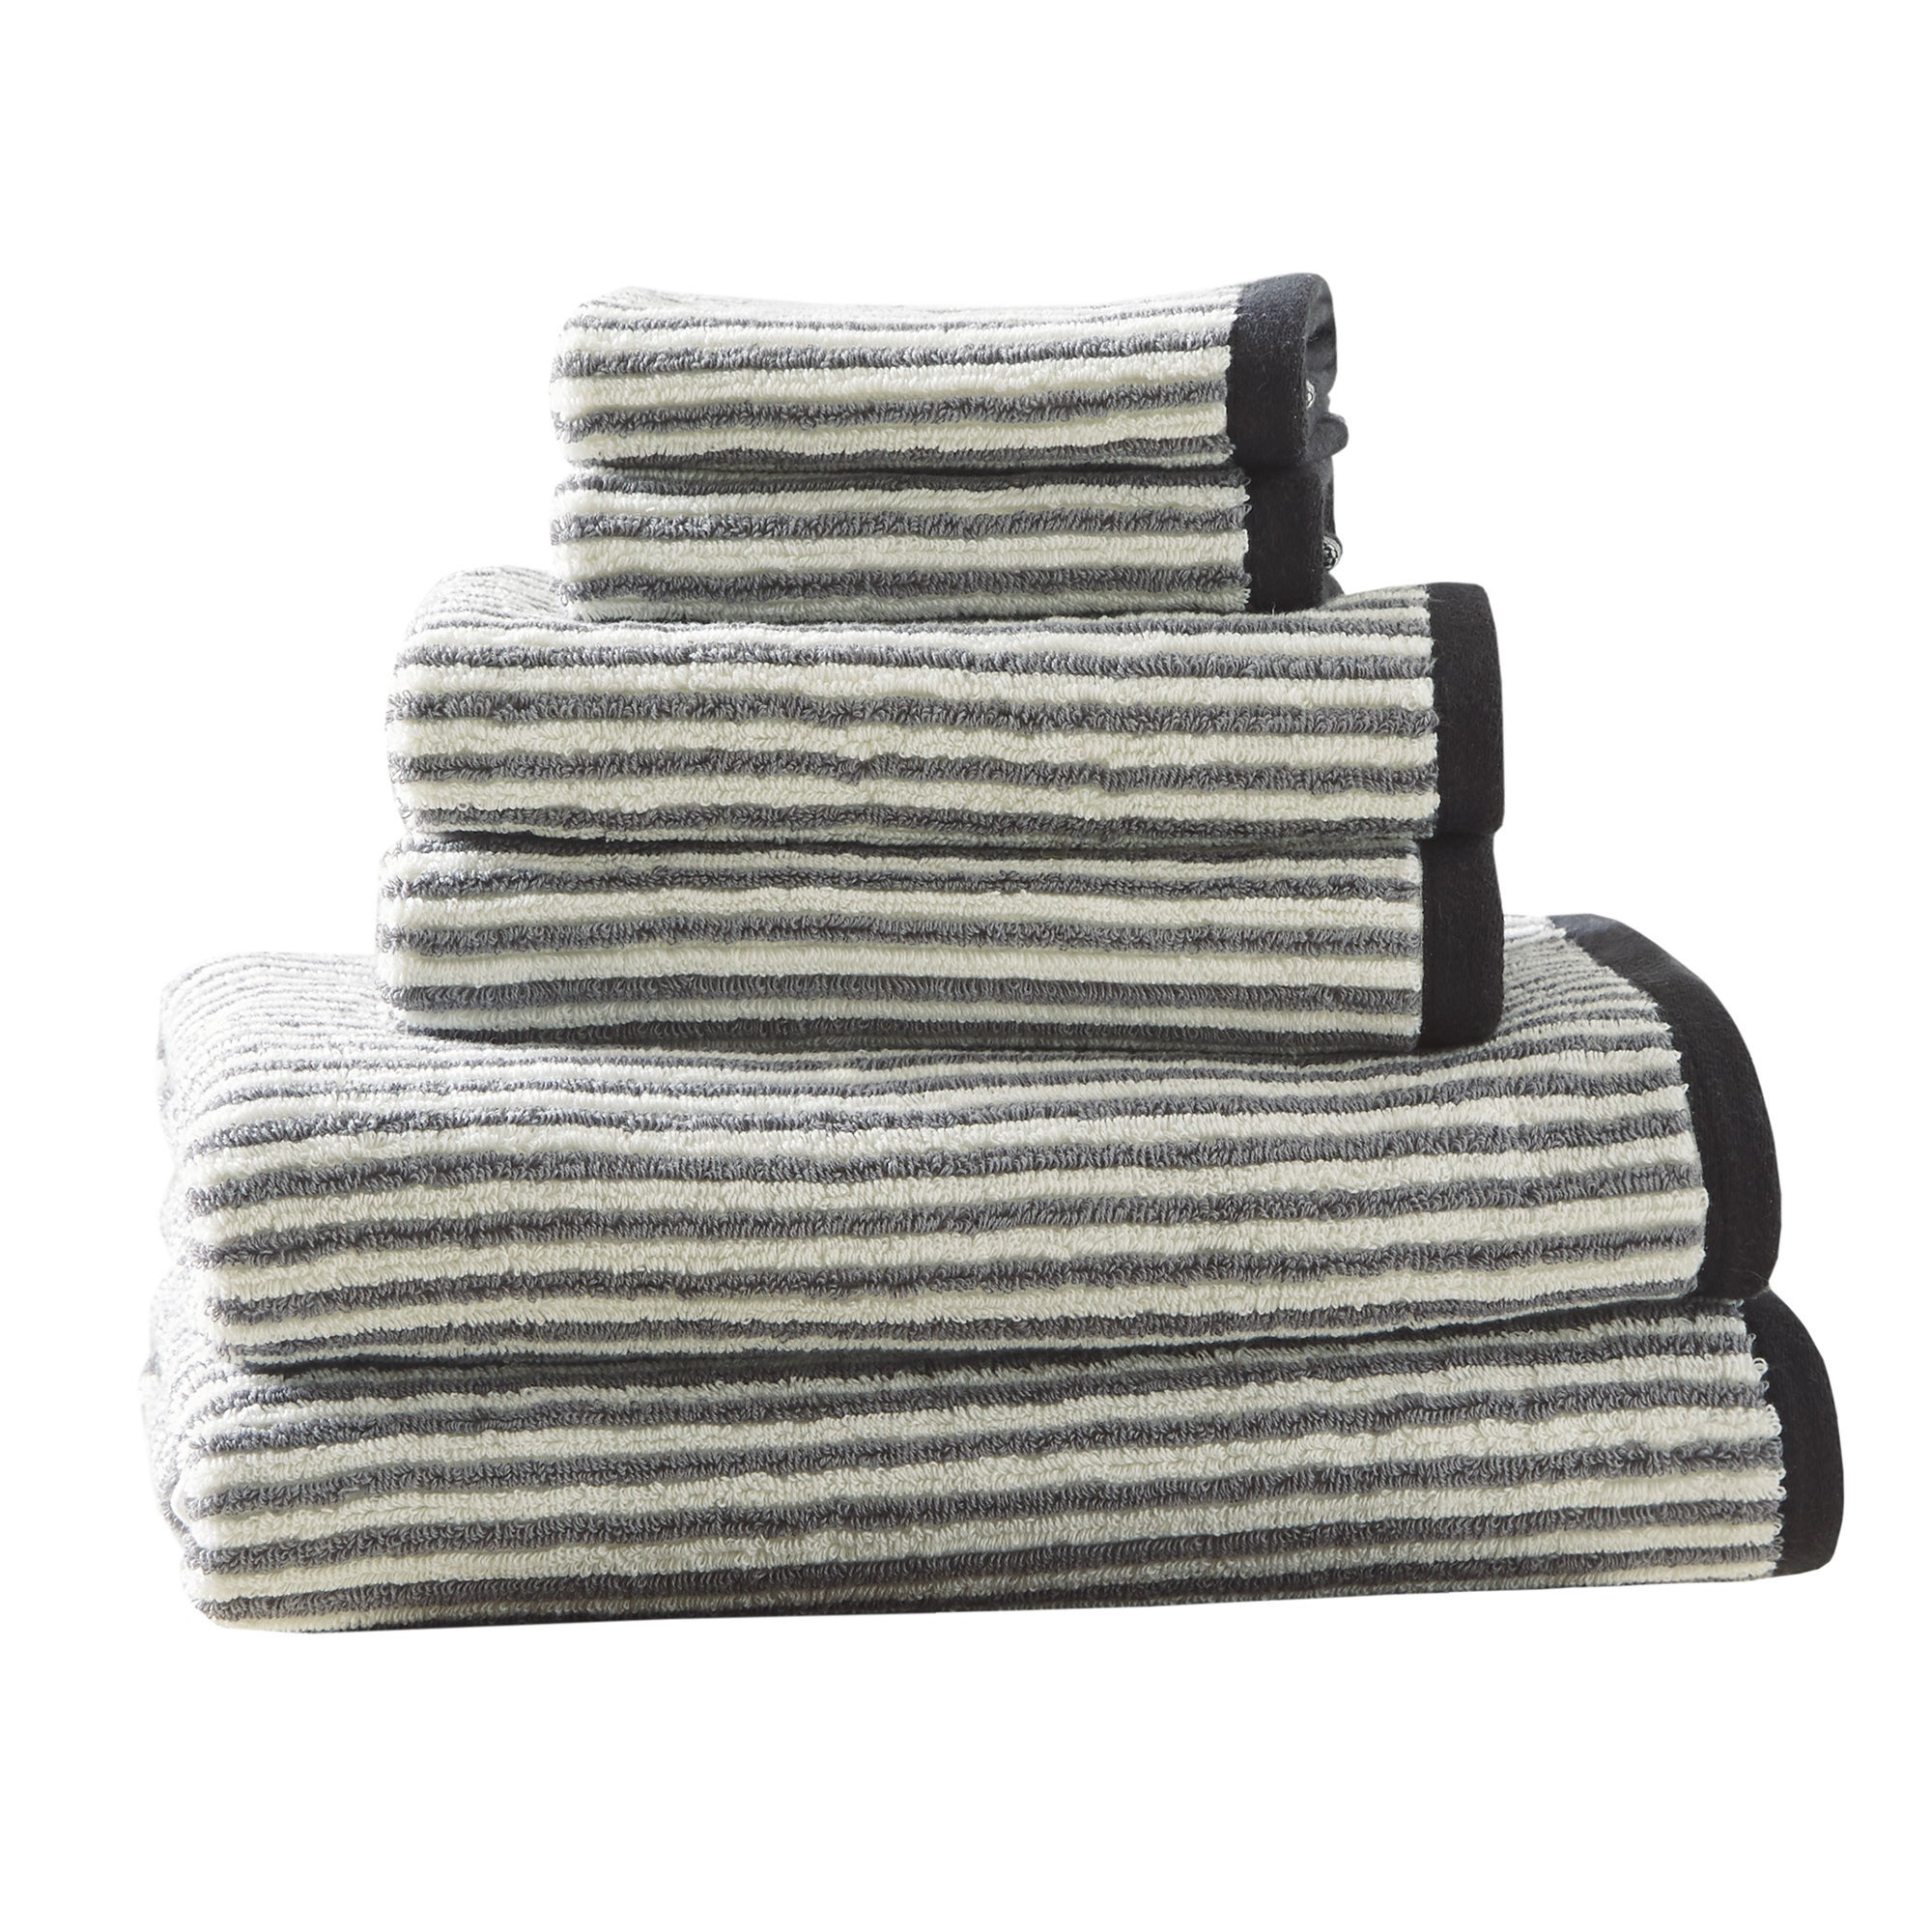 Hipstyle Dax Grey Cotton Jacquard Towel Set Free Shipping Today 11829481